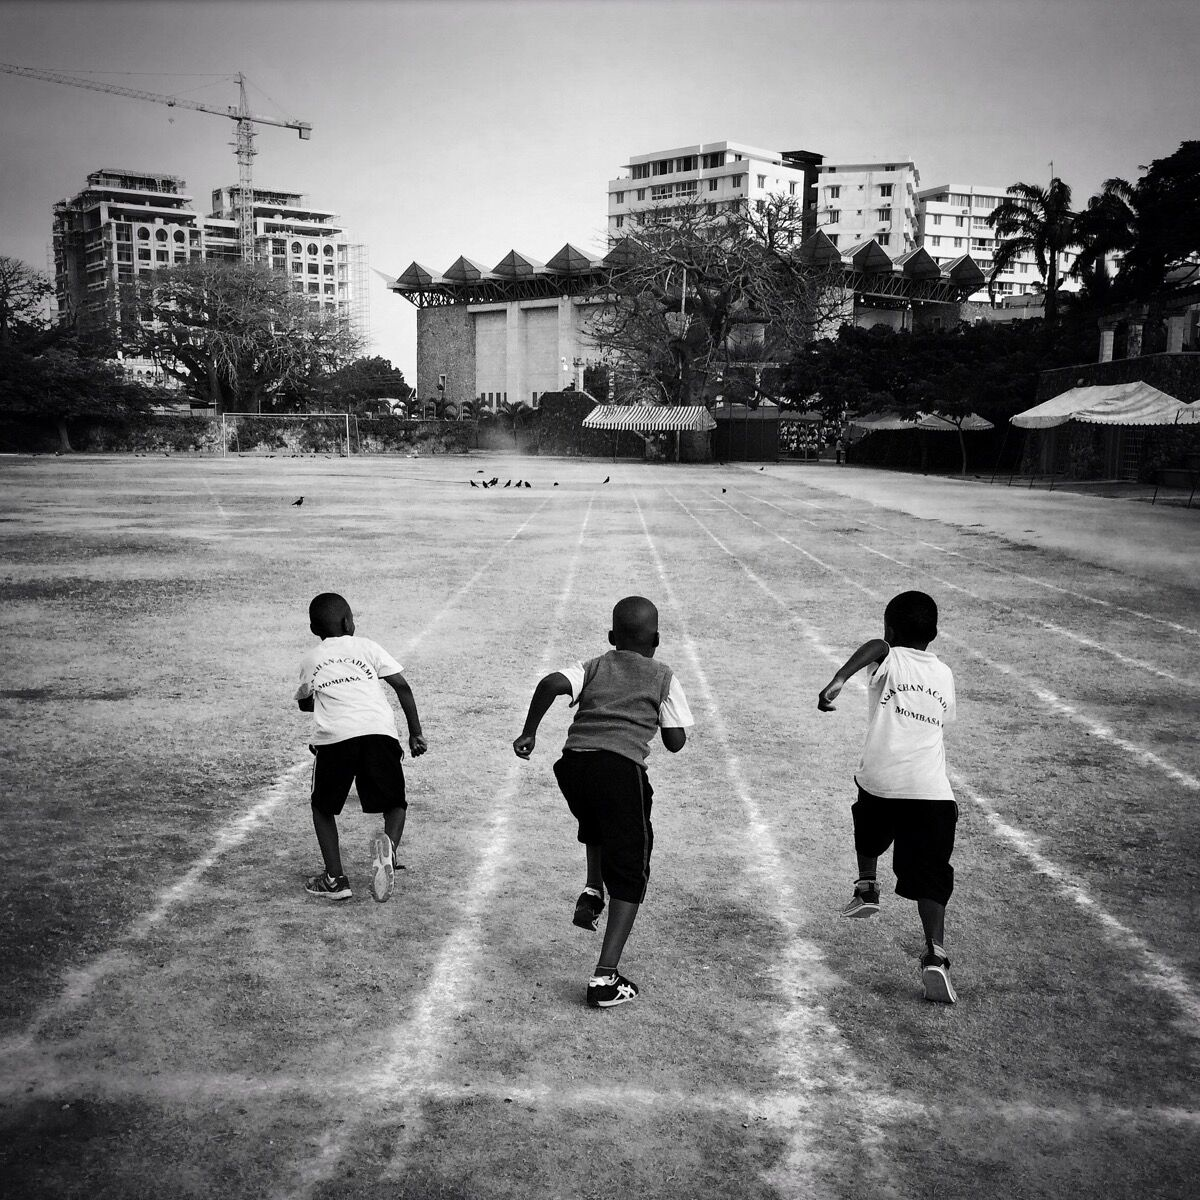 Three boys from the junior school of Aga Khan Academy in Mombasa,Kenya, race on the school's track before the morning assembly. Photo by @austin_merrill.